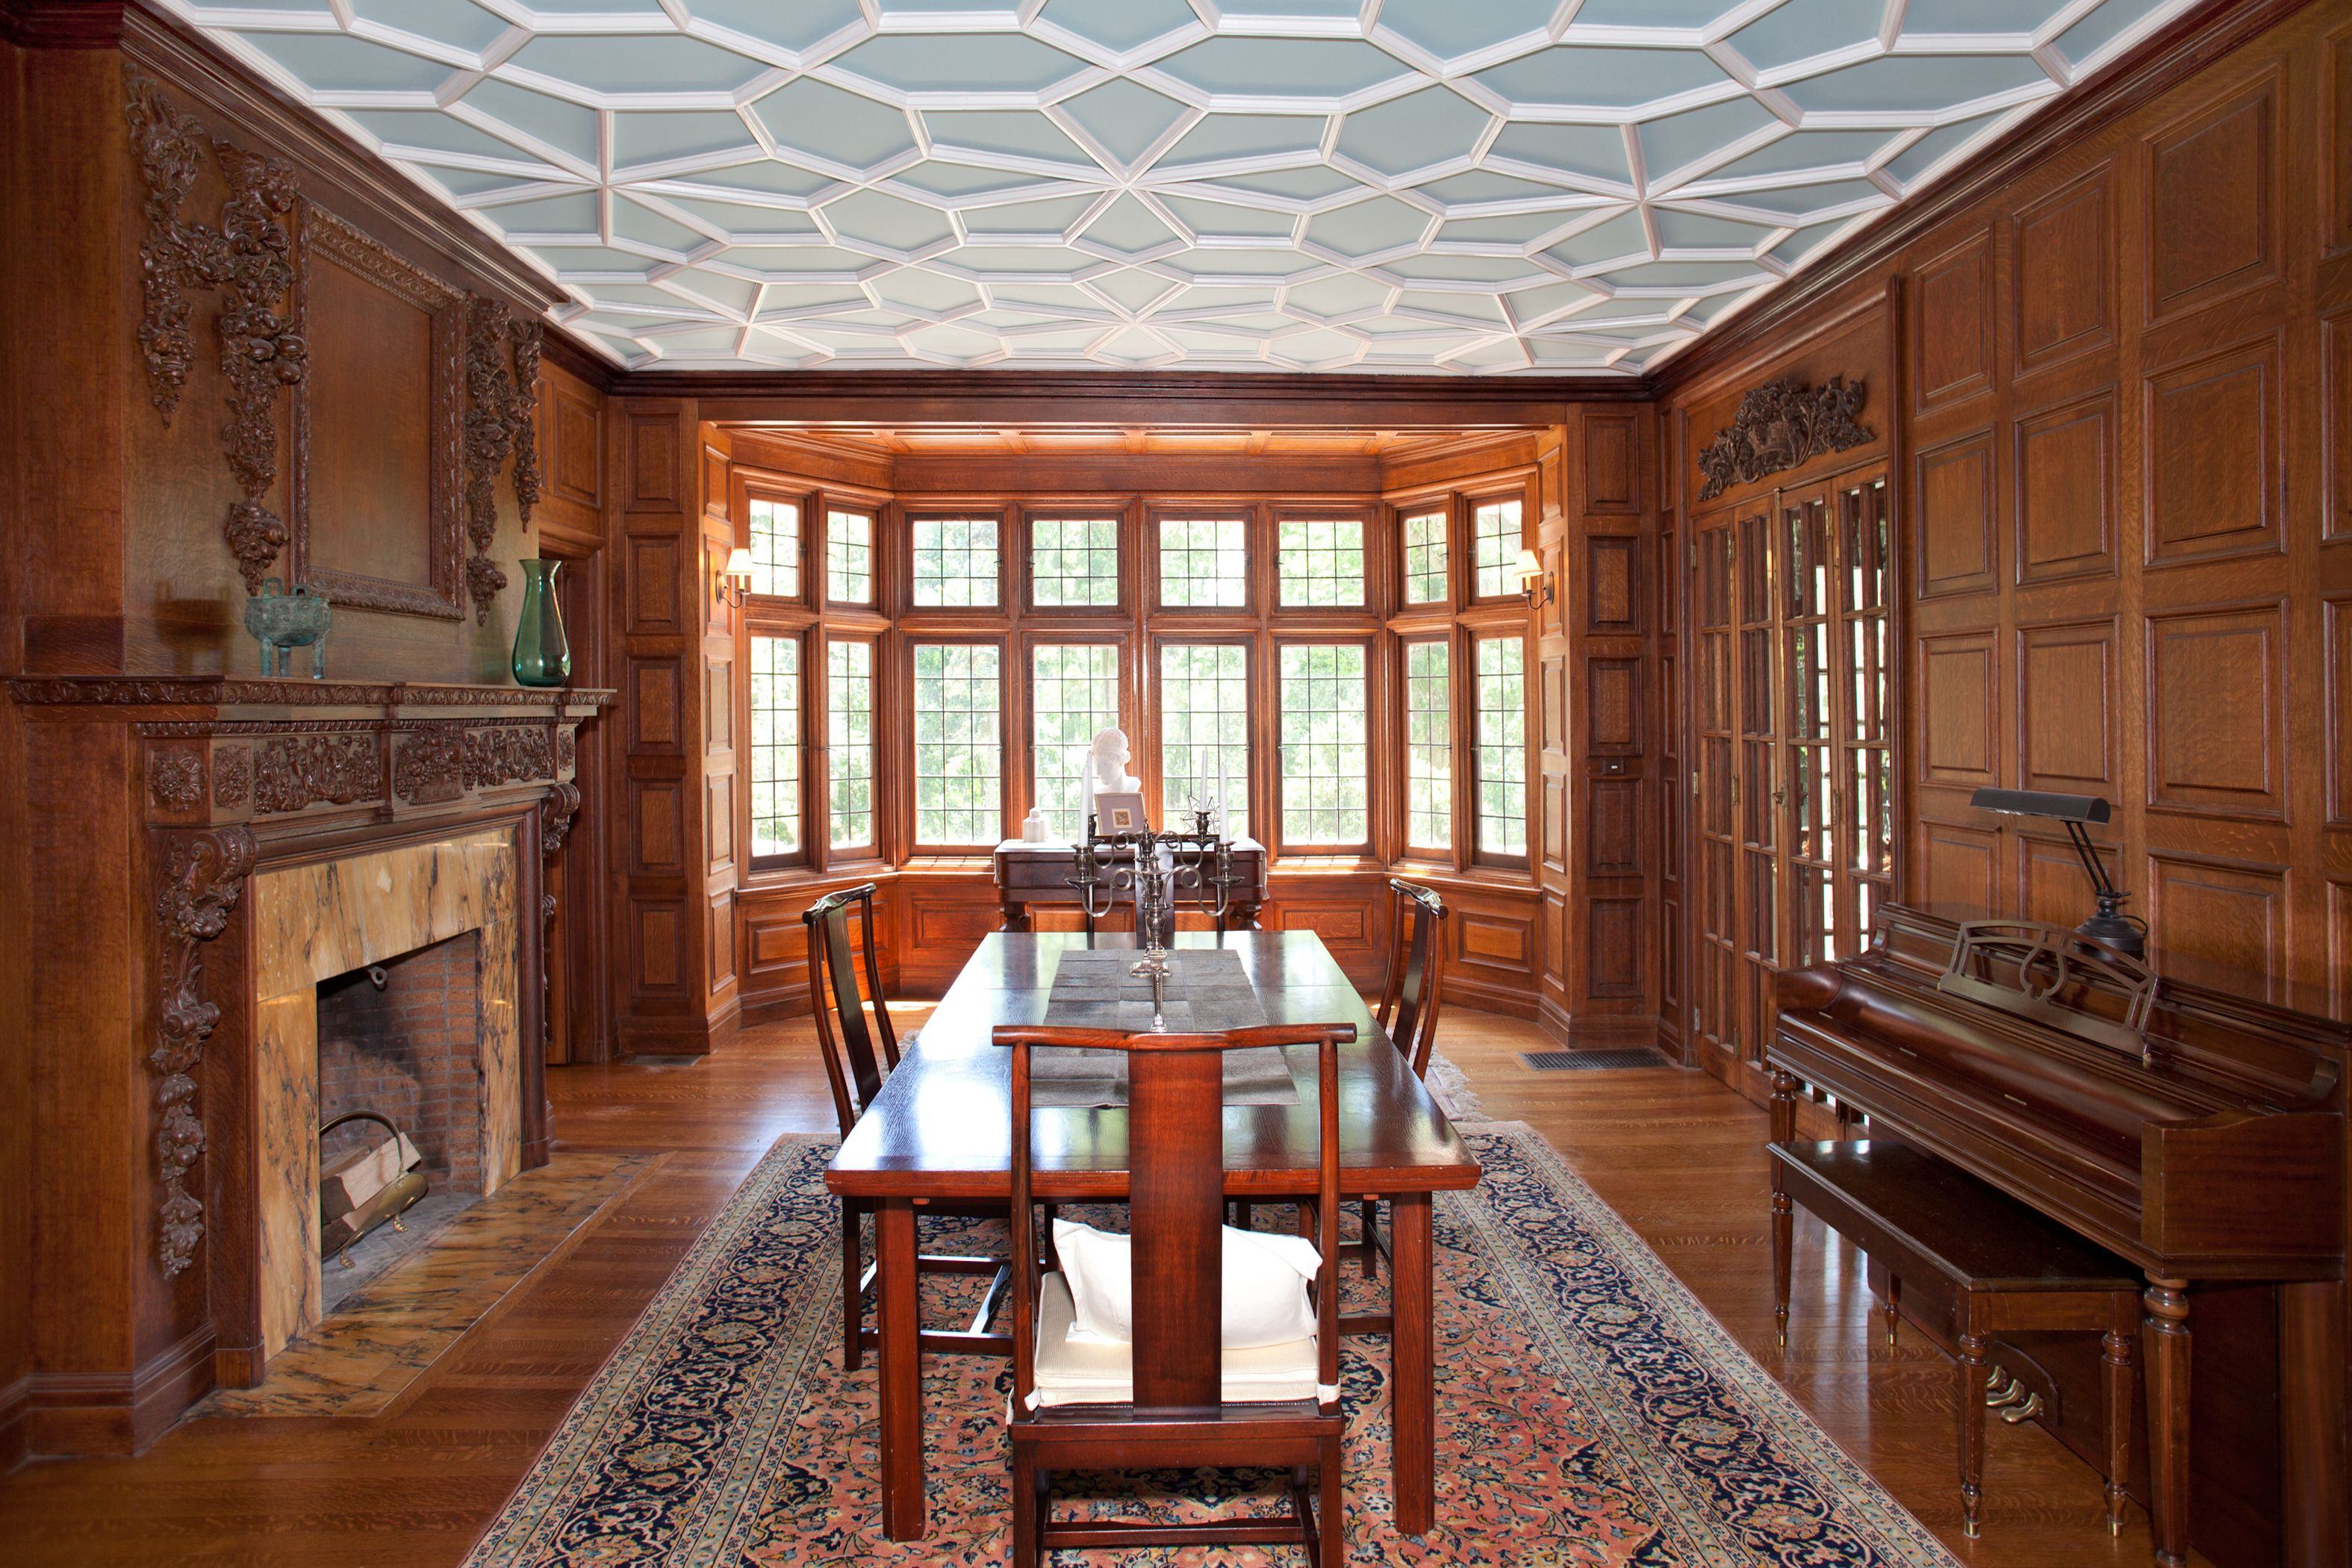 48+ Dining room wood paneling ideas in 2021